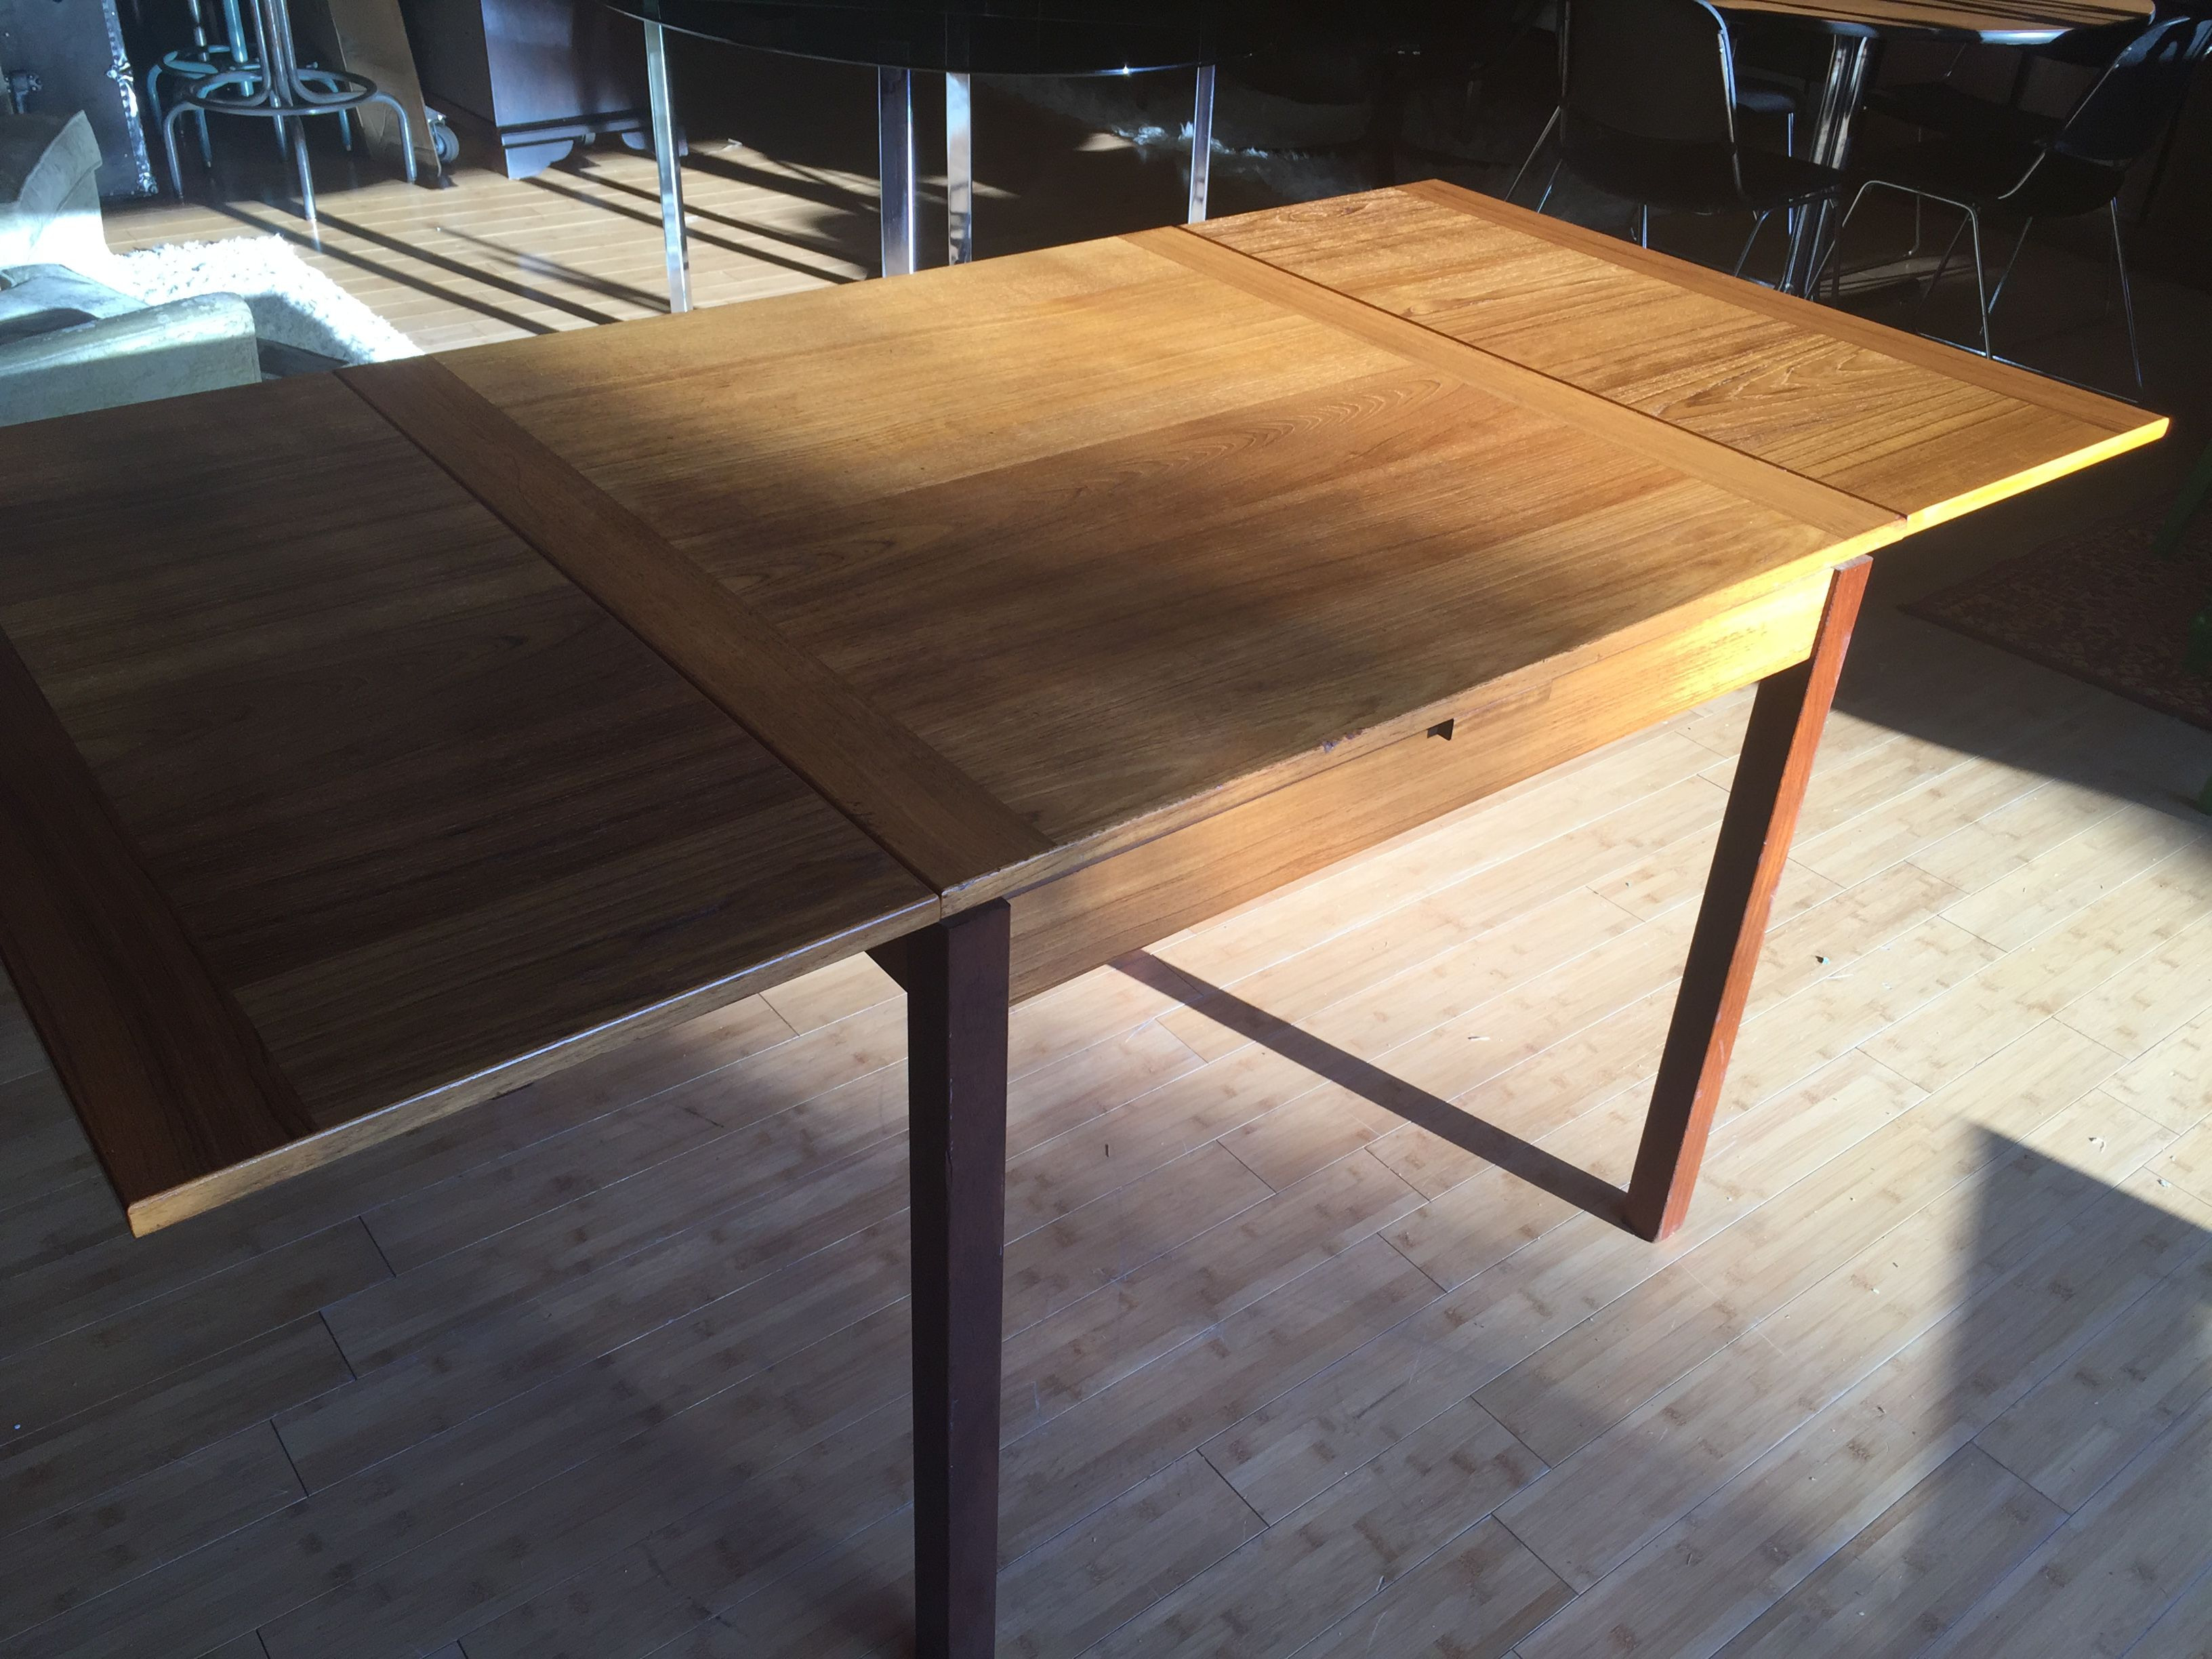 Teak extension dining table in excellent condition very clean and - Ansager Mobler Teak Dining Table Made In Denmark For Sale By Moore Treasures